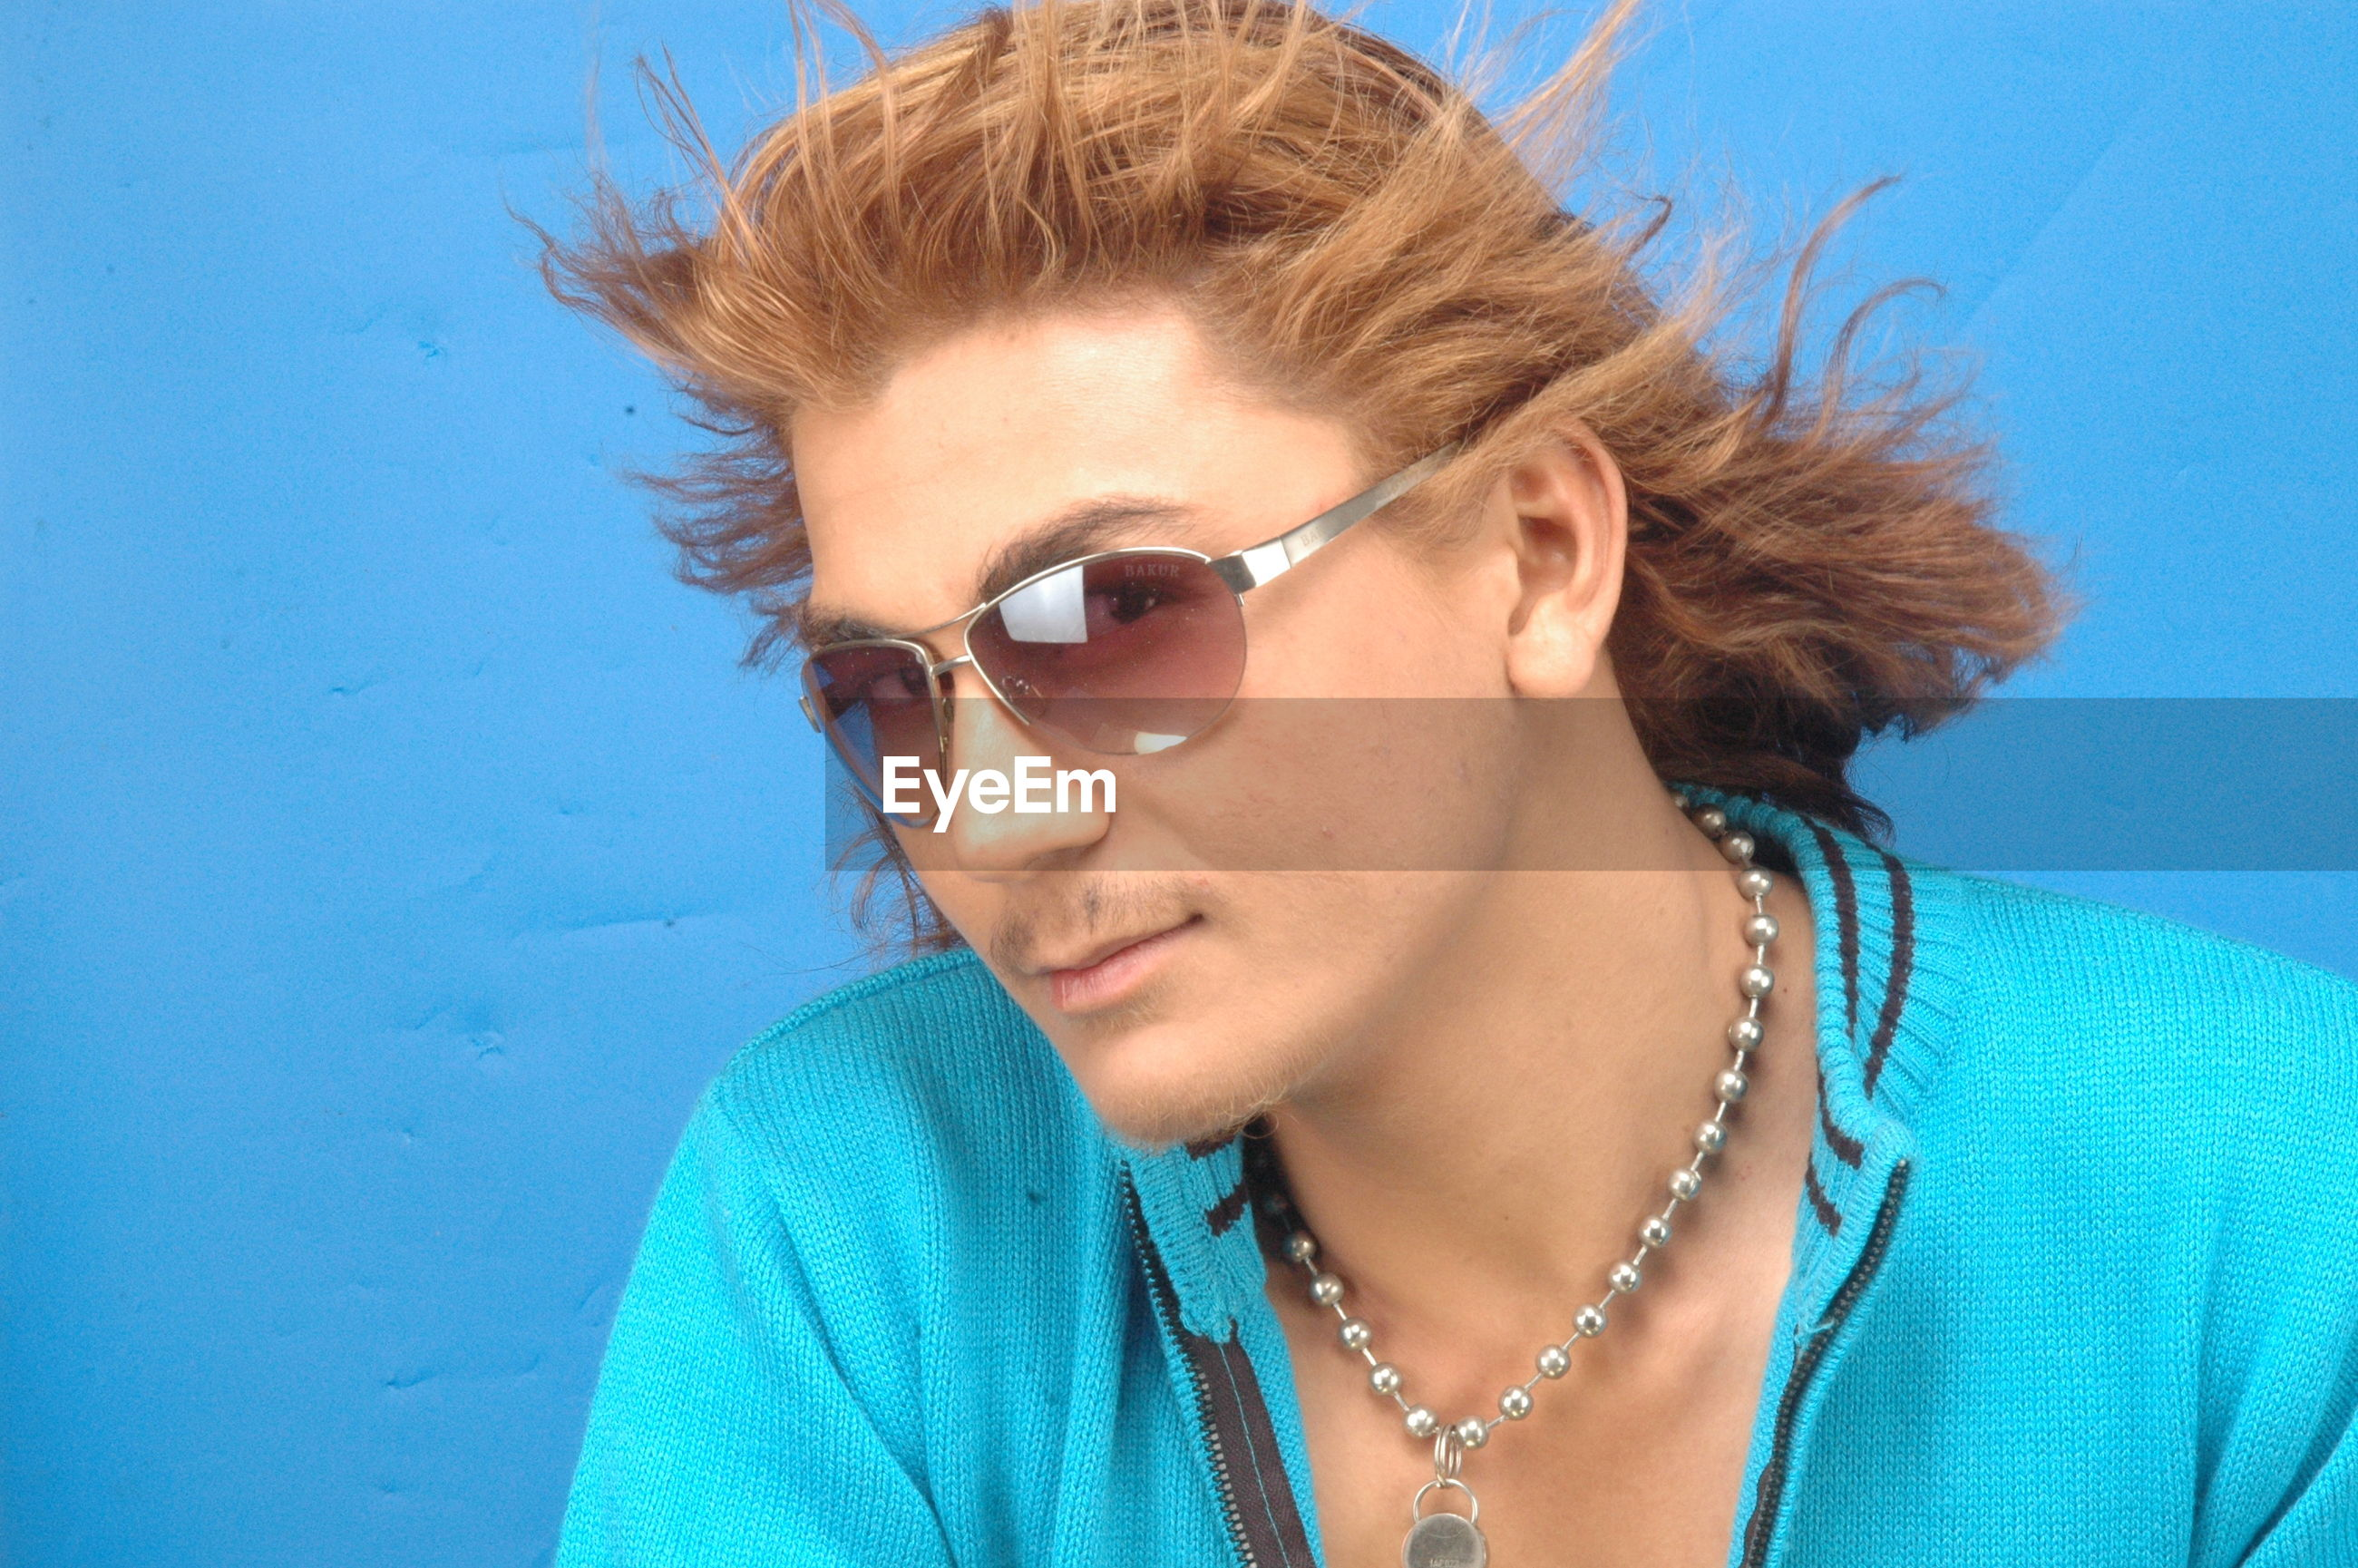 young adult, portrait, person, looking at camera, headshot, lifestyles, front view, leisure activity, casual clothing, young women, sunglasses, smiling, head and shoulders, blue, close-up, mid adult